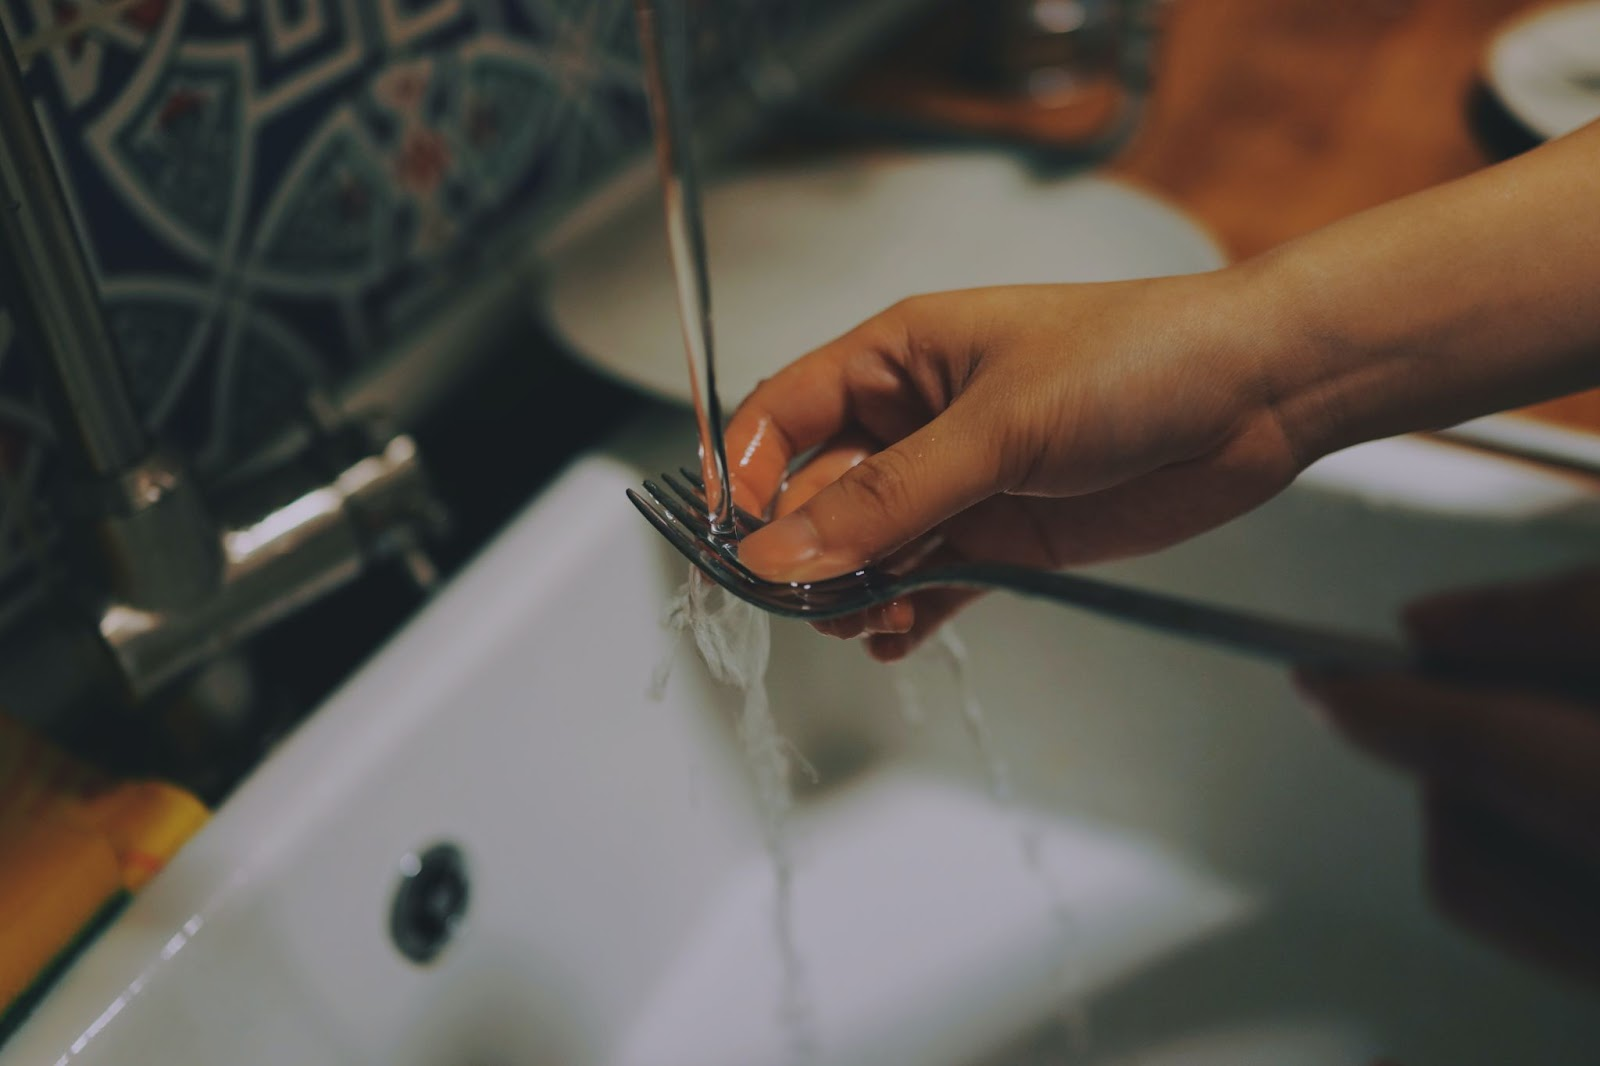 do less housework - clean as you use